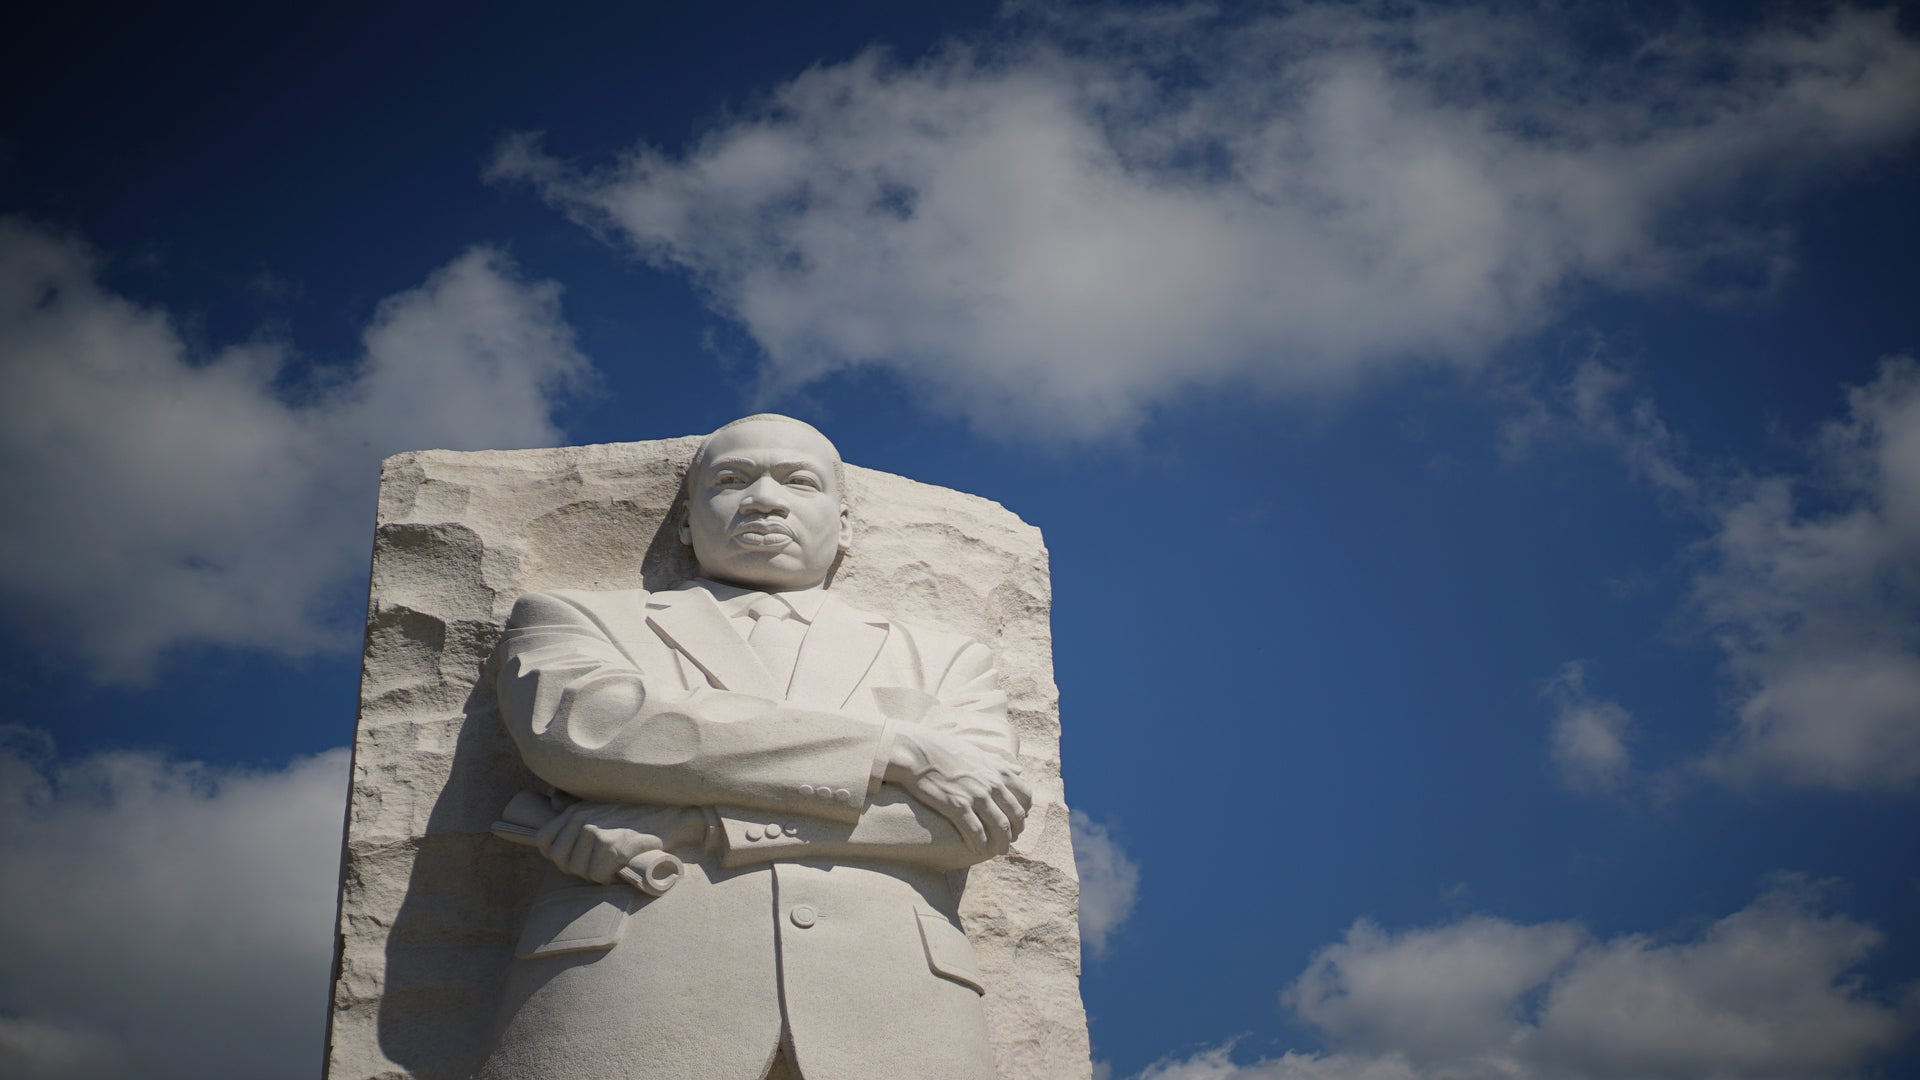 Where Do We Go From Here? Activists, Church Leaders And Writers Reflect On MLK's Legacy